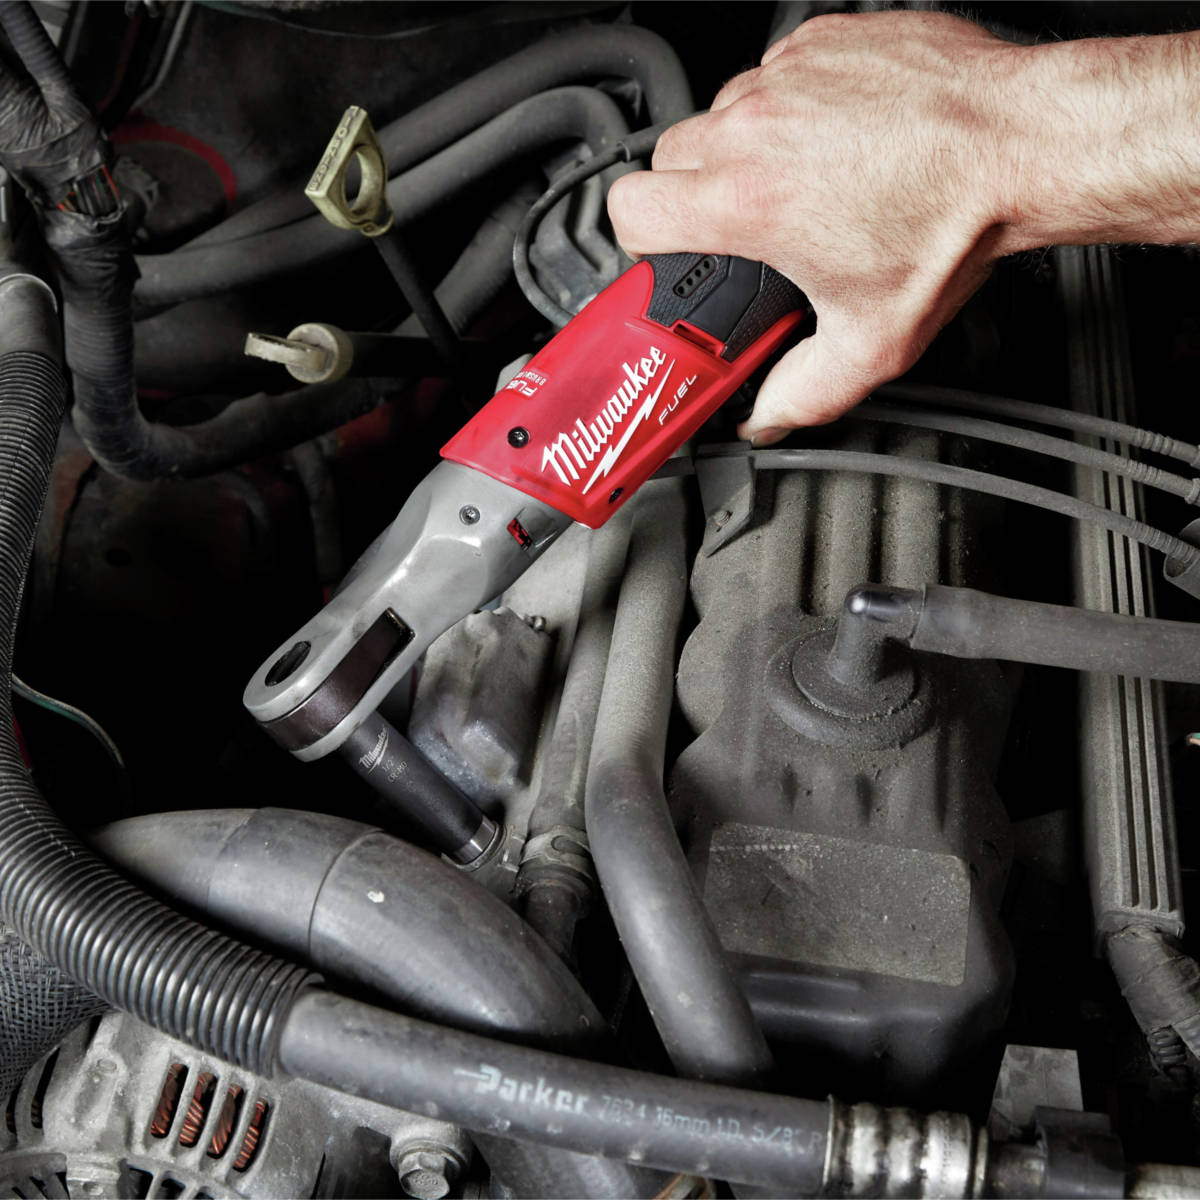 M12 FUEL 3/8 in. Ratchet allows users more access in tight spaces